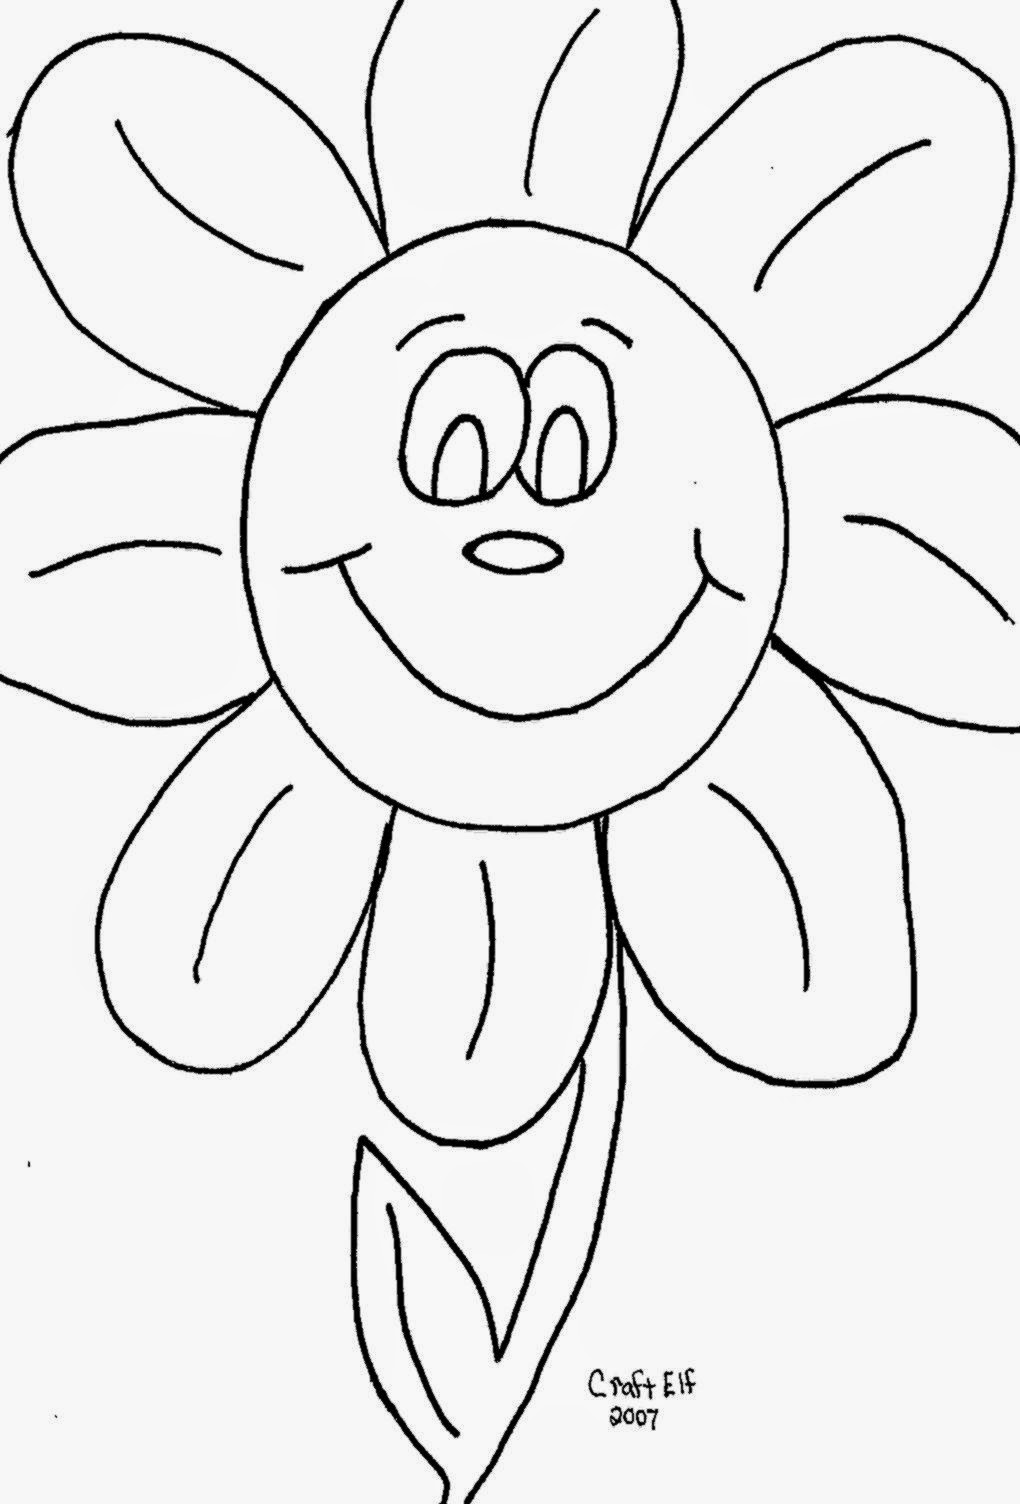 Kindergarten color sheets free coloring sheet for Preschool coloring pages